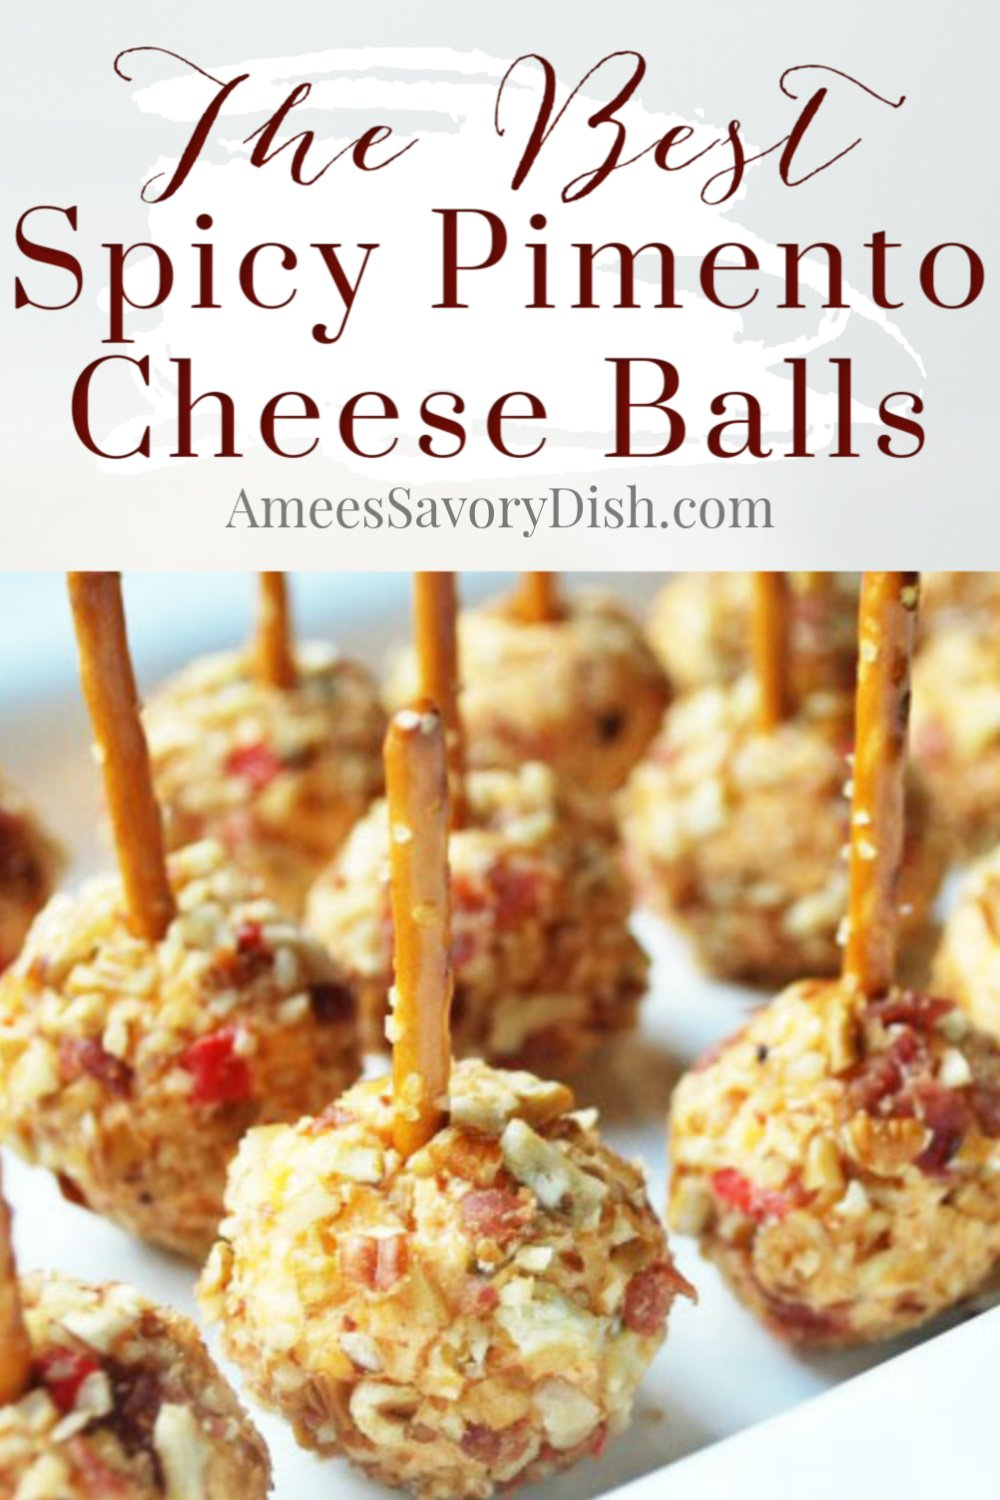 A recipe for pimento cheese balls rolled in toasted nuts and served on a pretzel stick for a deliciously easy party appetizer. #cheeseballs #spicypimentocheese #pimentocheeseballs #appetizerrecipe via @Ameessavorydish